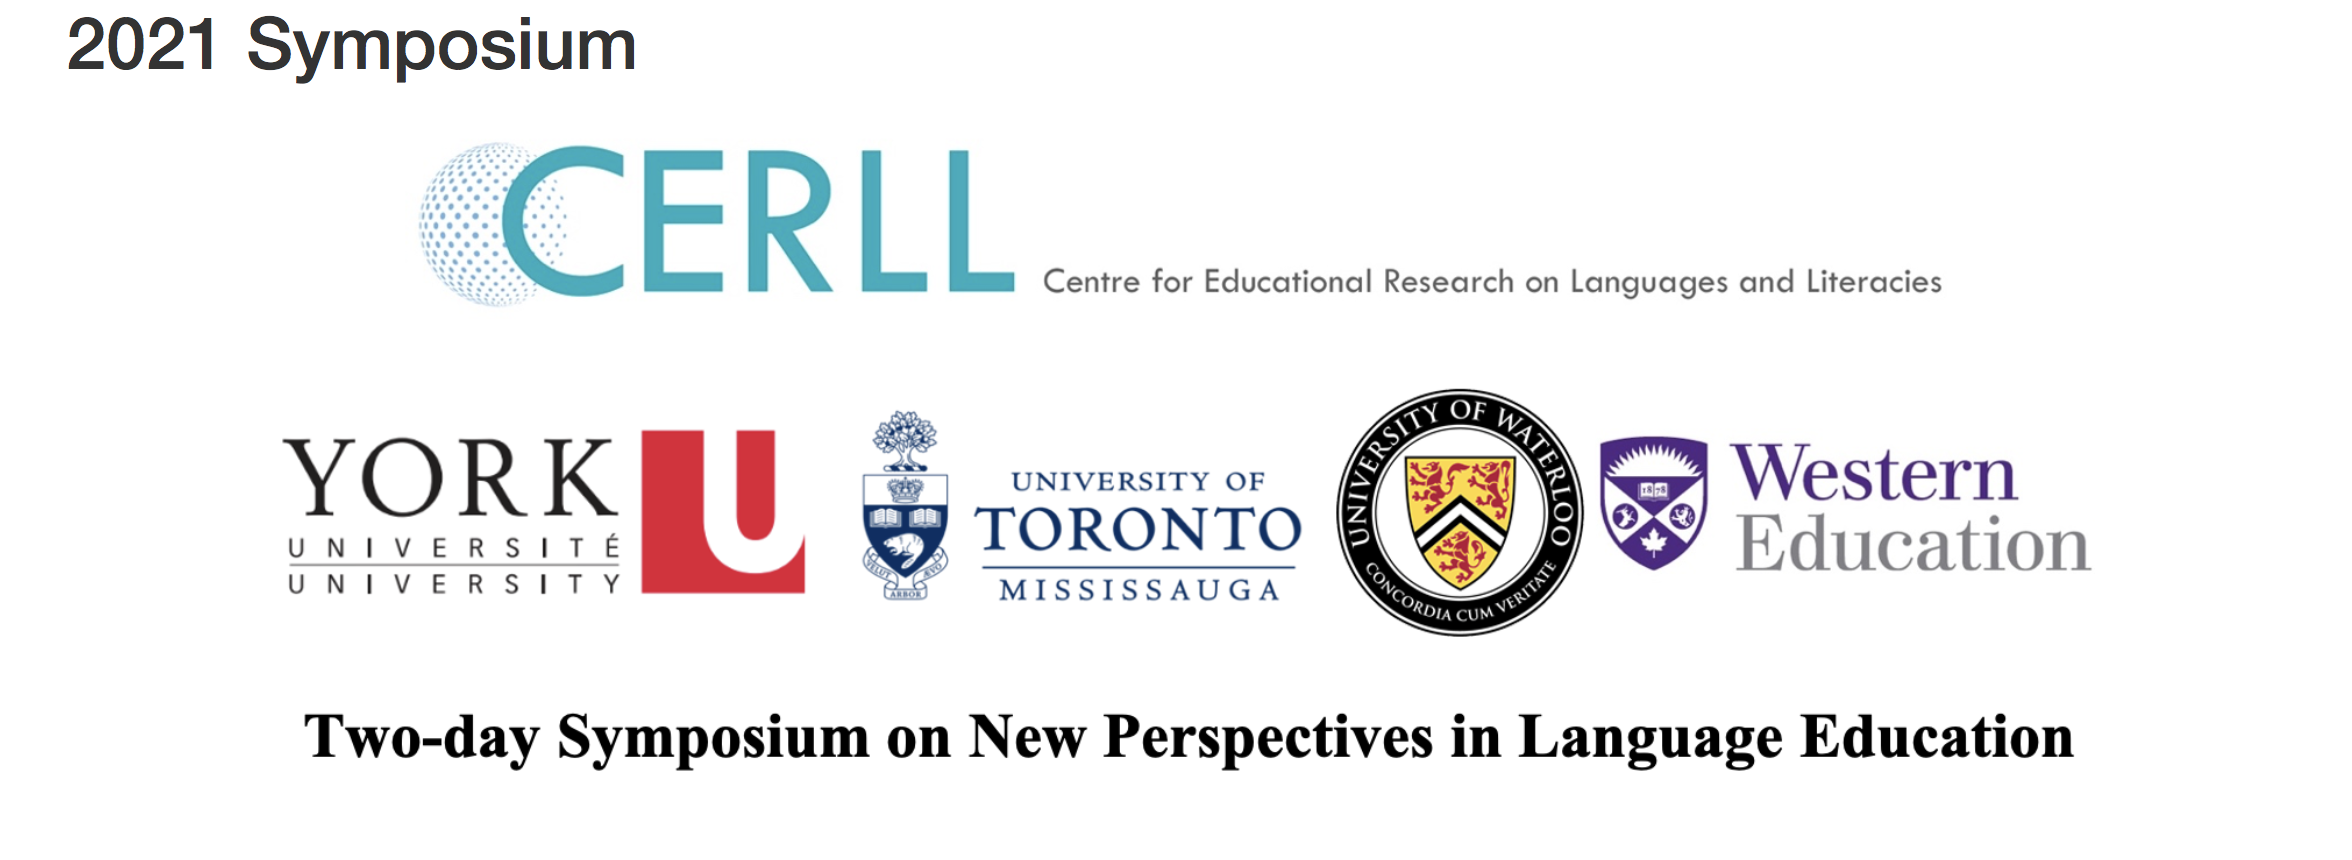 Image of logos from the University of Toronto, Western University, York University and University of Waterloo